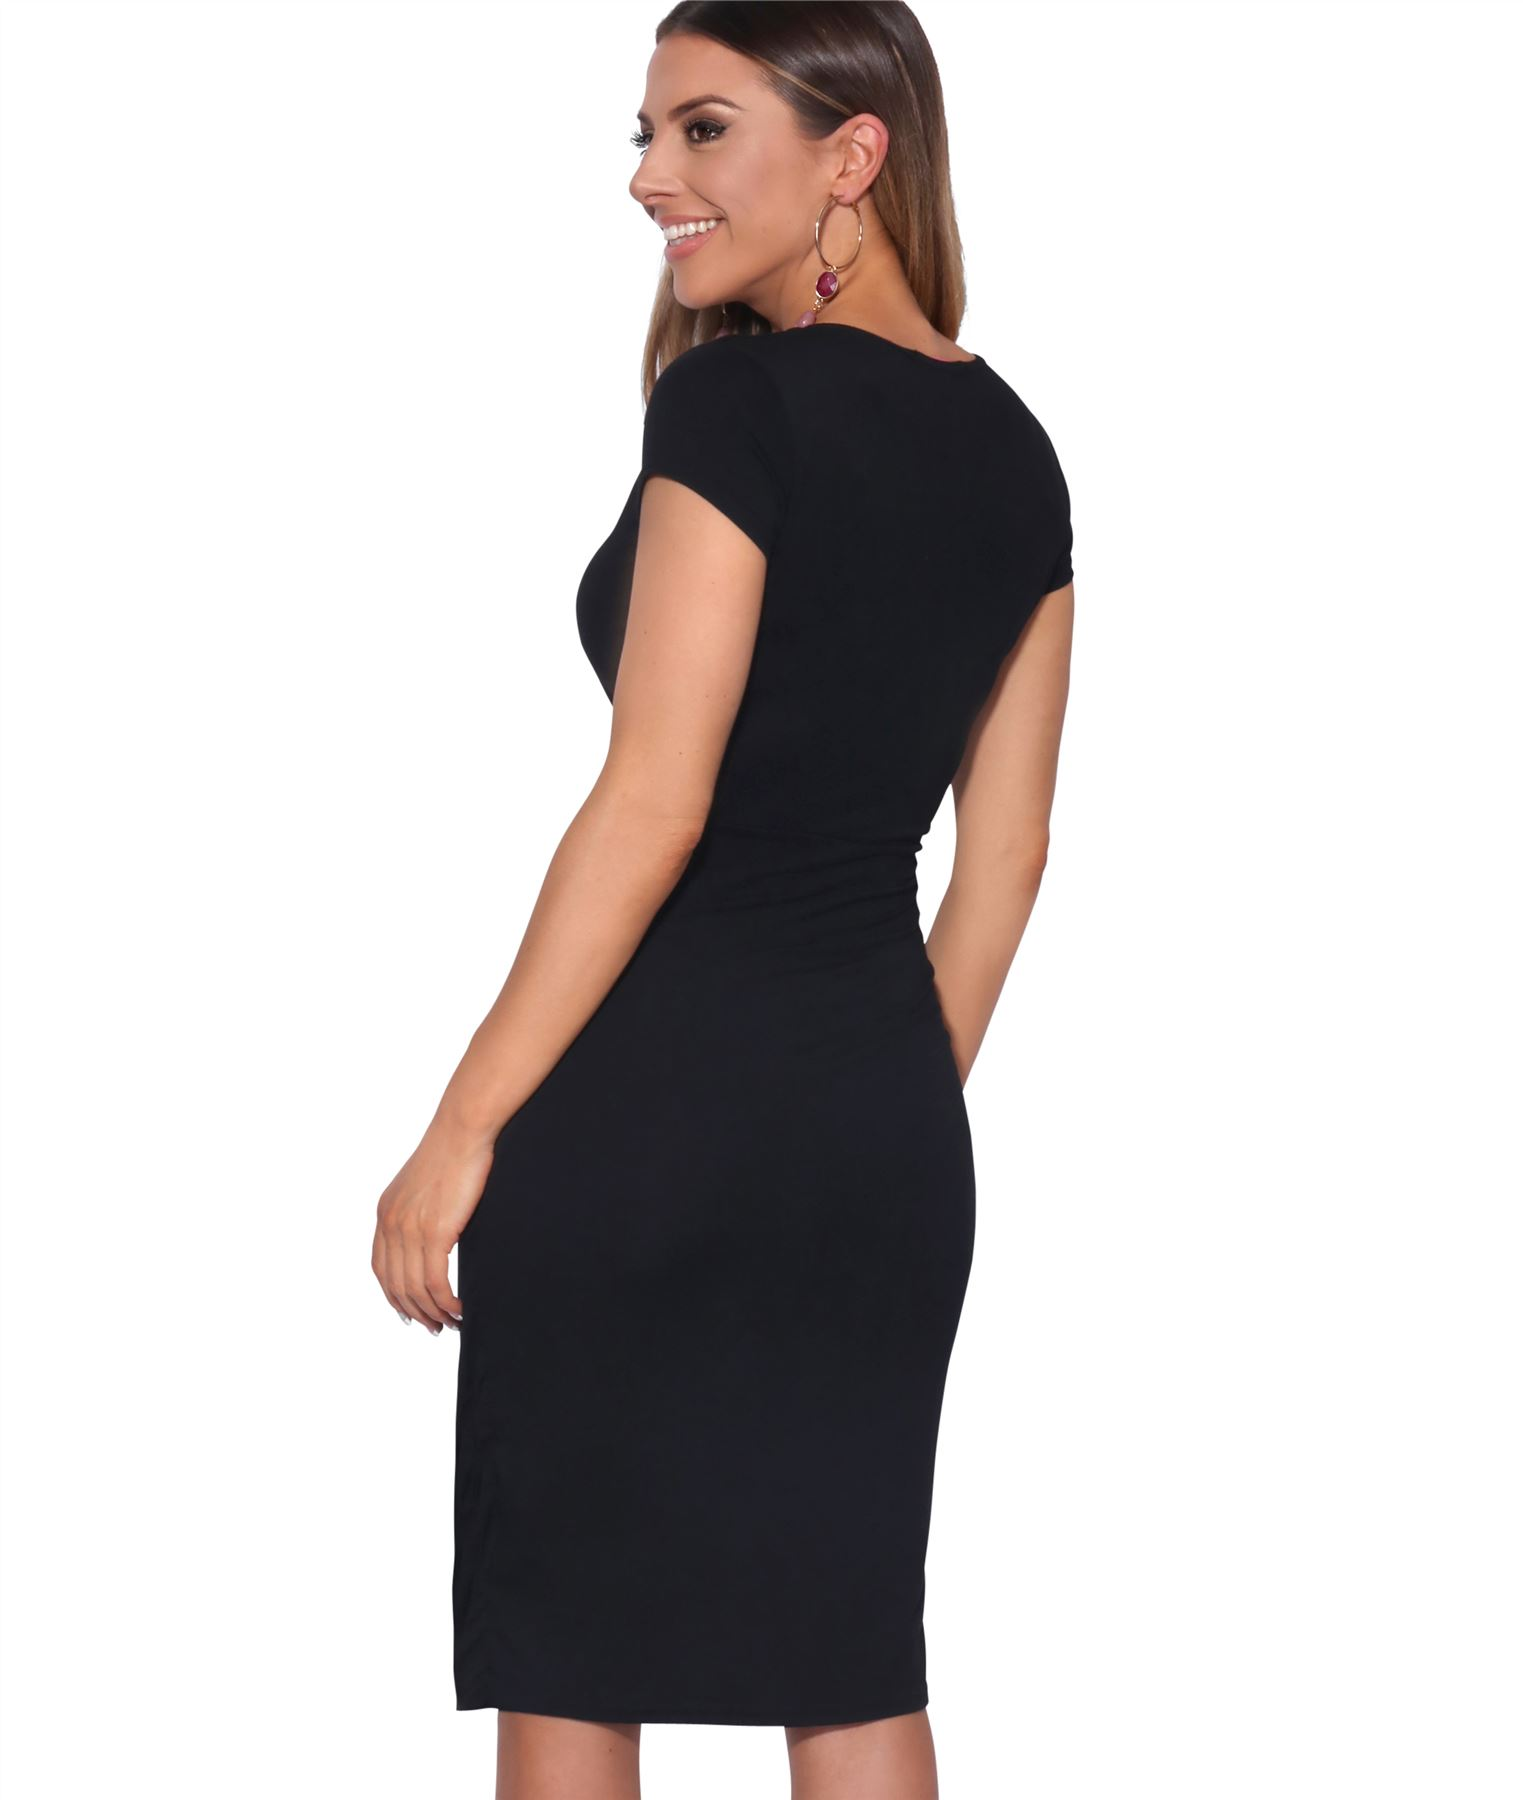 Womens-Ladies-V-Neck-Wrap-Midi-Dress-Front-Pleated-Skirt-Top-Cap-Sleeve-Party thumbnail 4